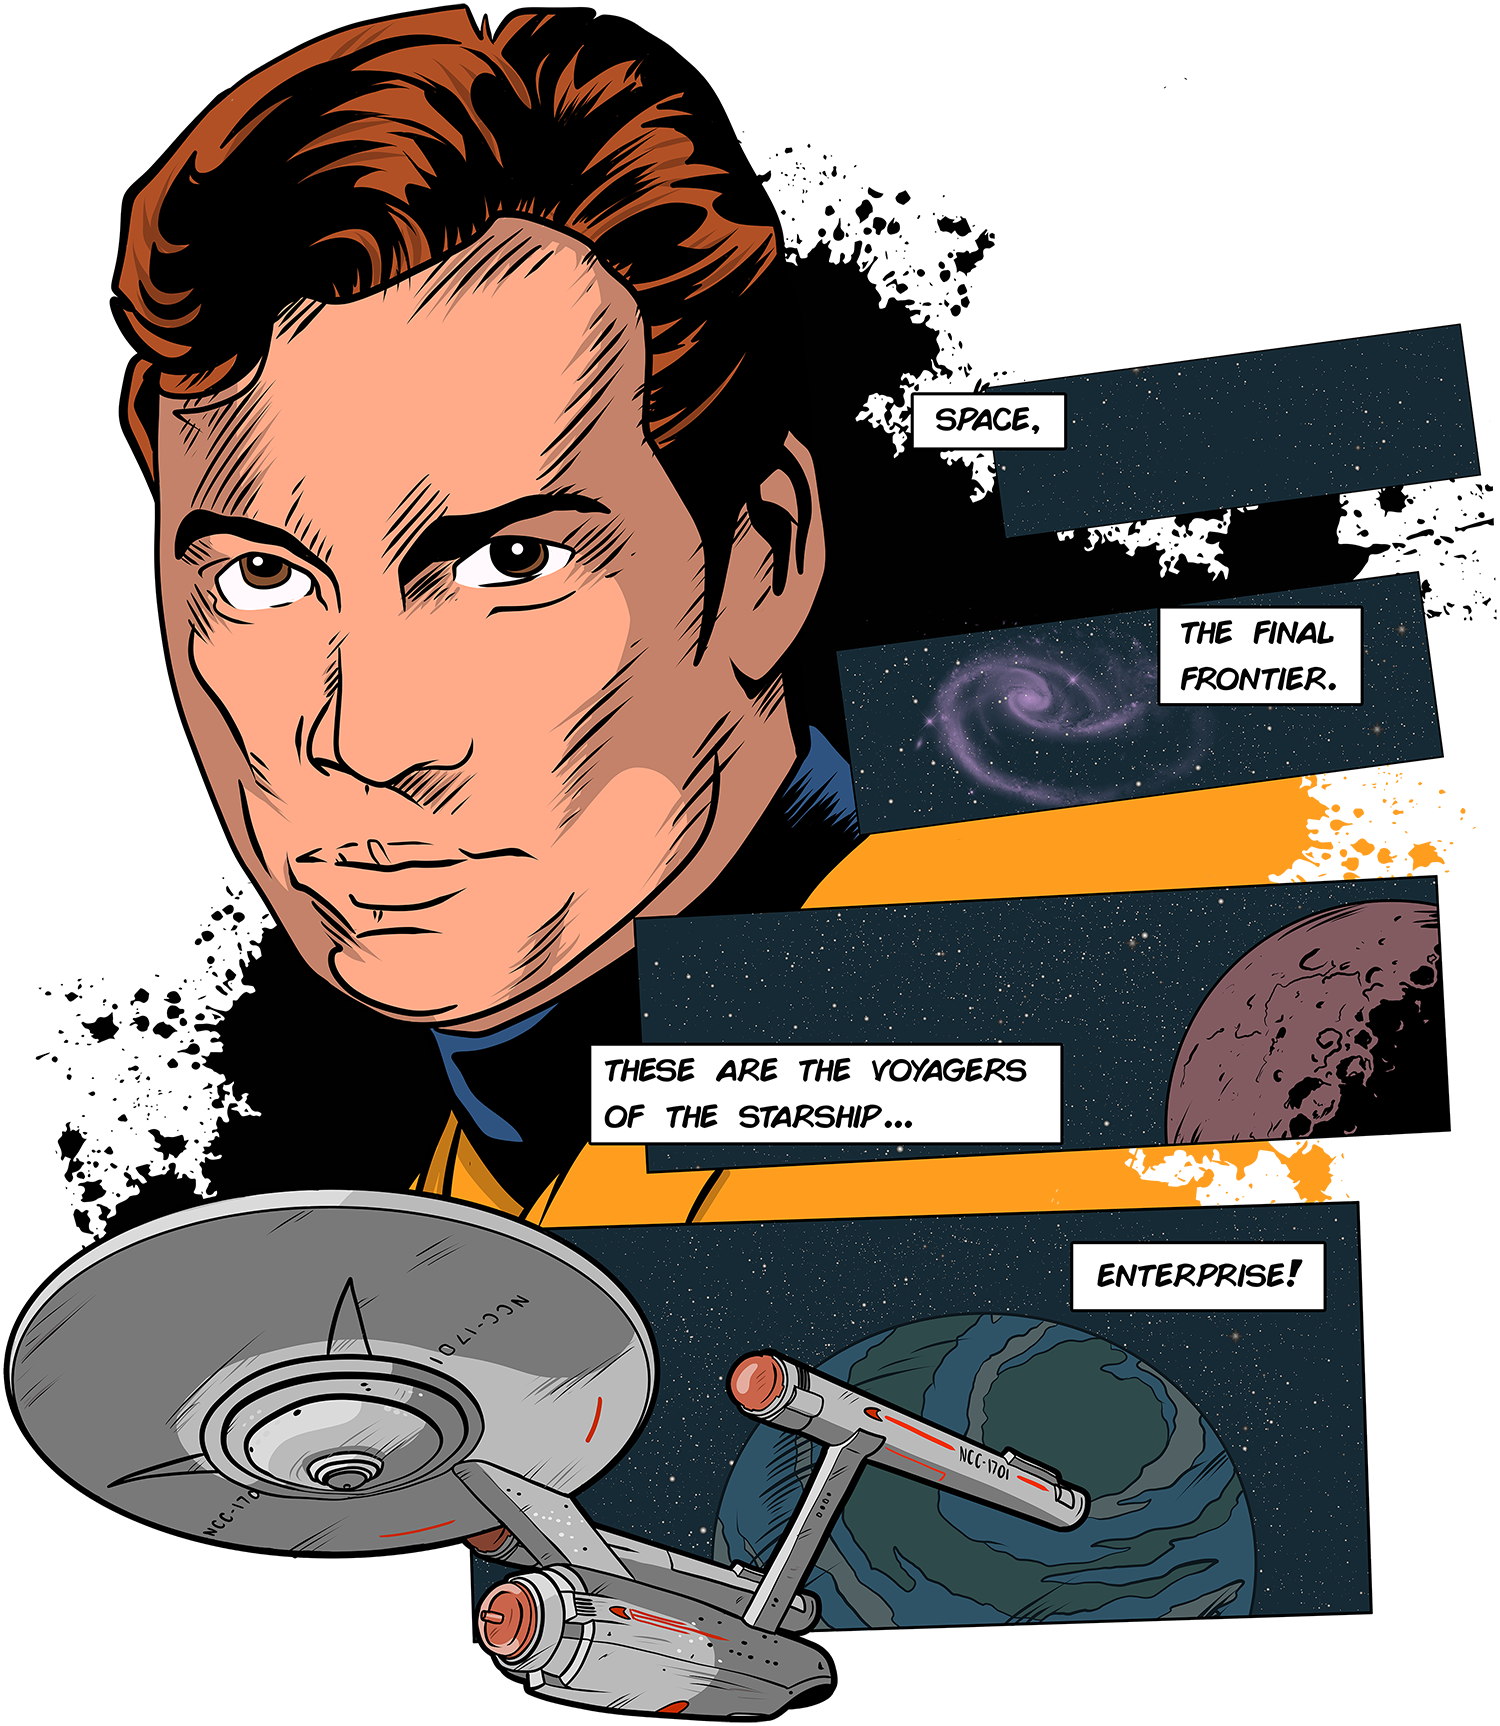 Star Trek. These are the voyagers....